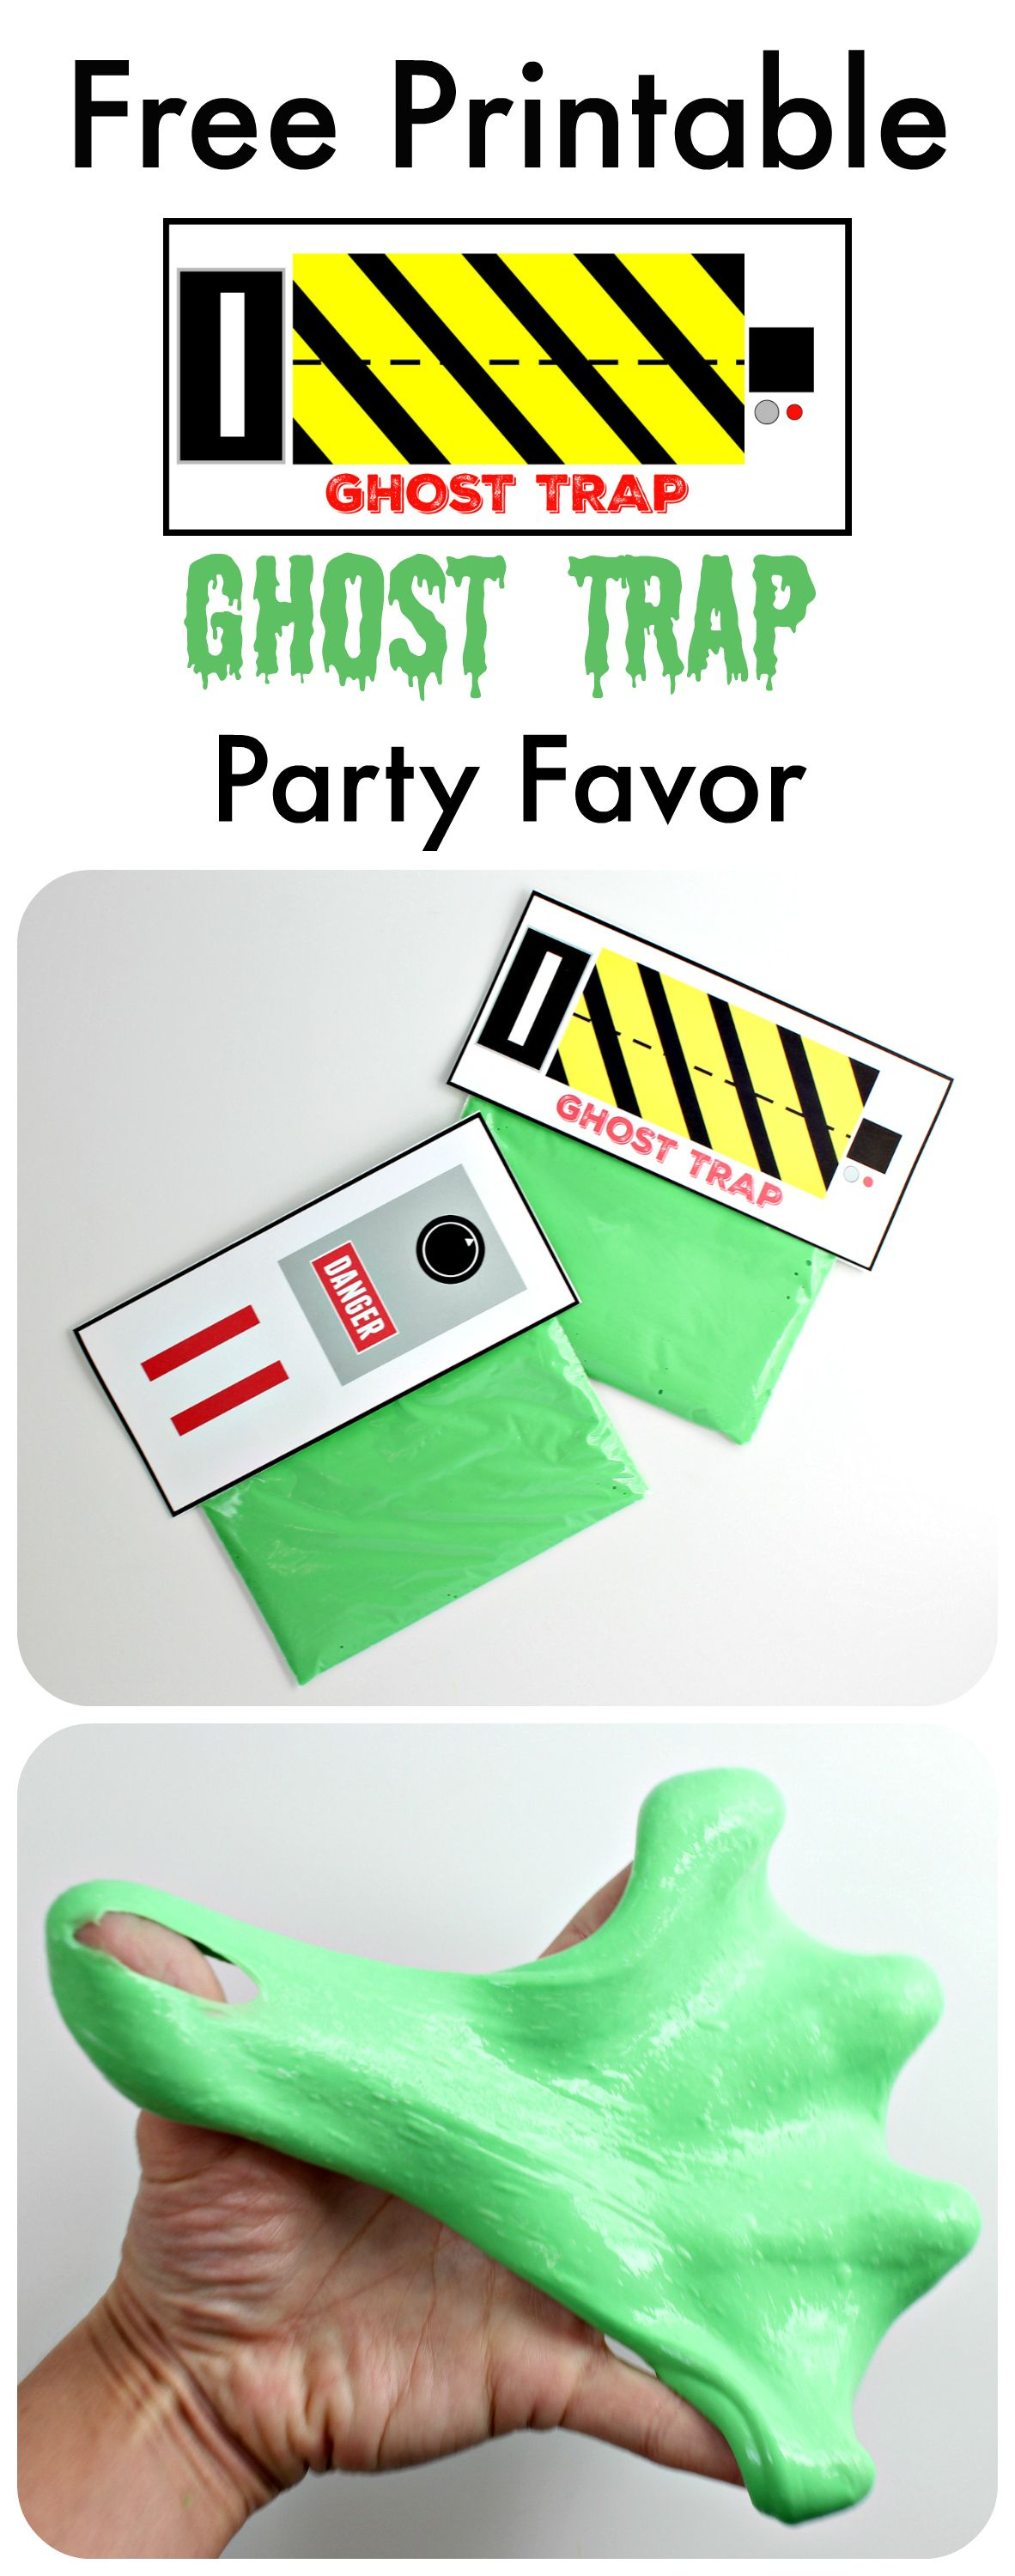 Free Printable Ghost Trap Party Favor Inspired By Slimer From Ghostbusters Mom Collaborative Ghostbusters Party Halloween Party Themes Party Printables Free